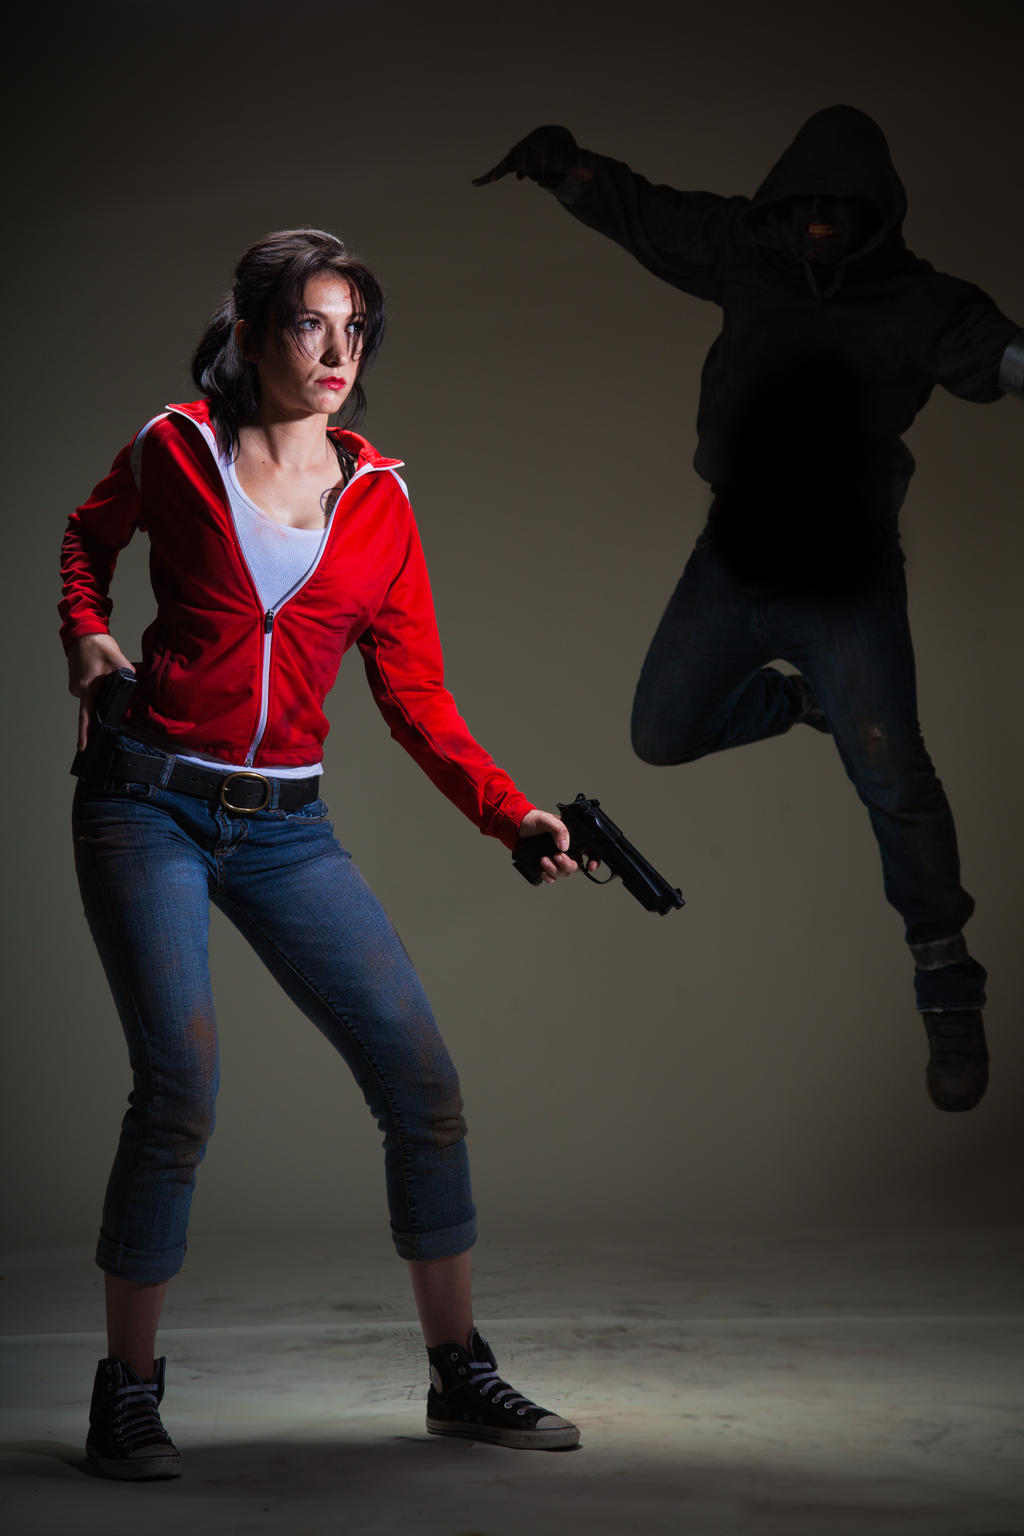 Zoey from Left 4 Dead #Left4Dead #Cosplay